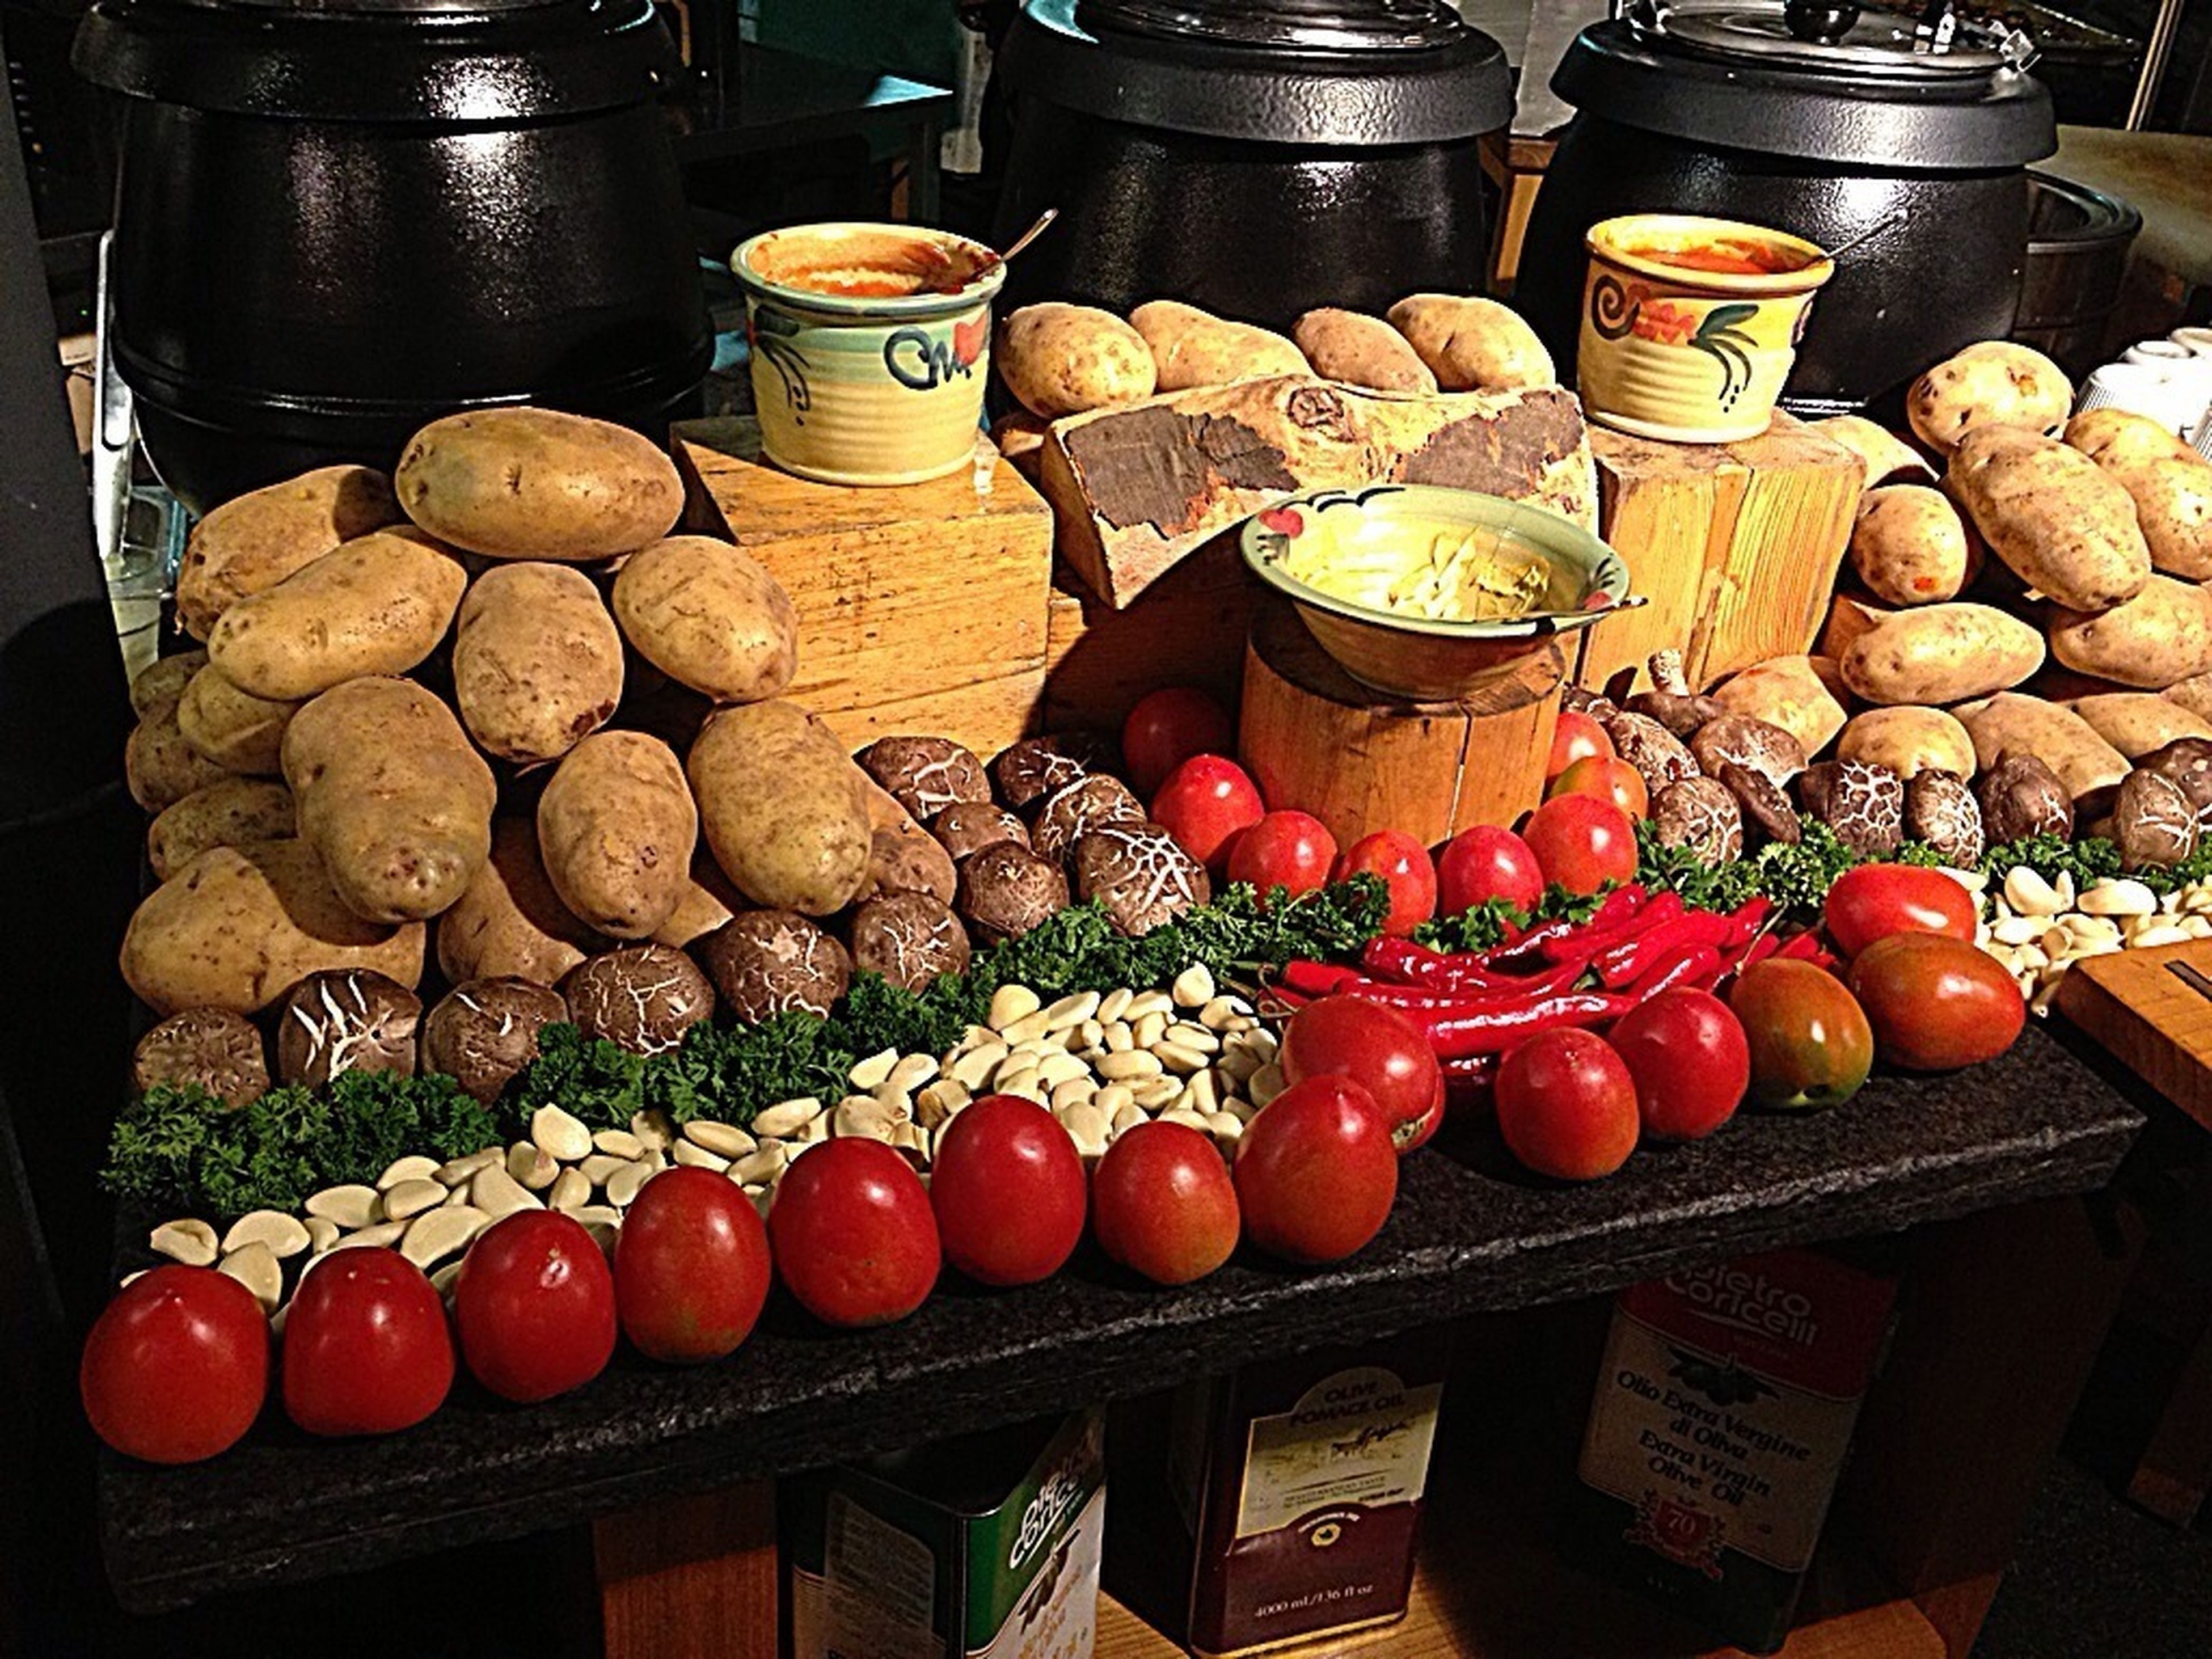 food and drink, food, freshness, healthy eating, still life, large group of objects, abundance, indoors, variation, fruit, for sale, choice, retail, high angle view, container, red, market, table, market stall, vegetable